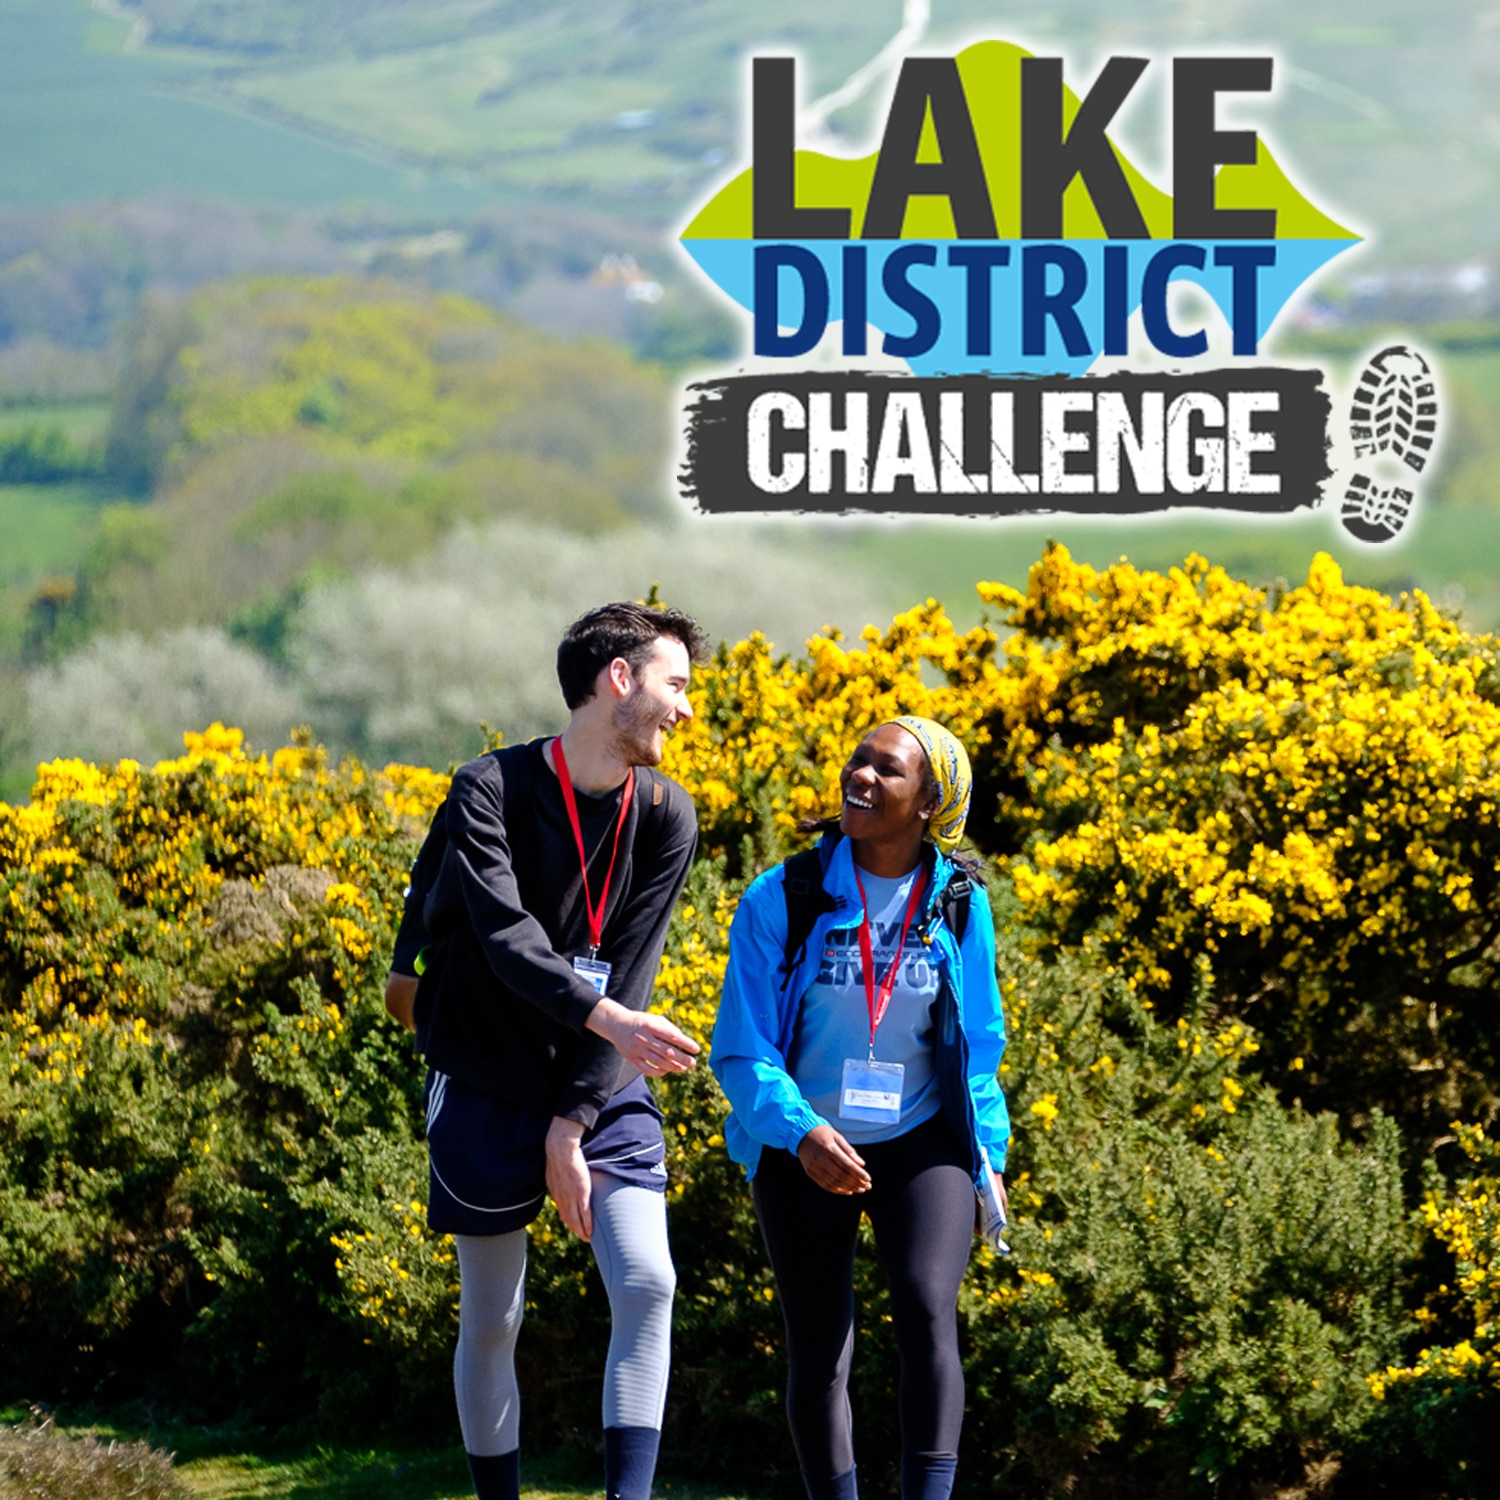 Image shows two walkers with yellow gorse in the background. 'Lake District Challenge' is written on the top right of the image.